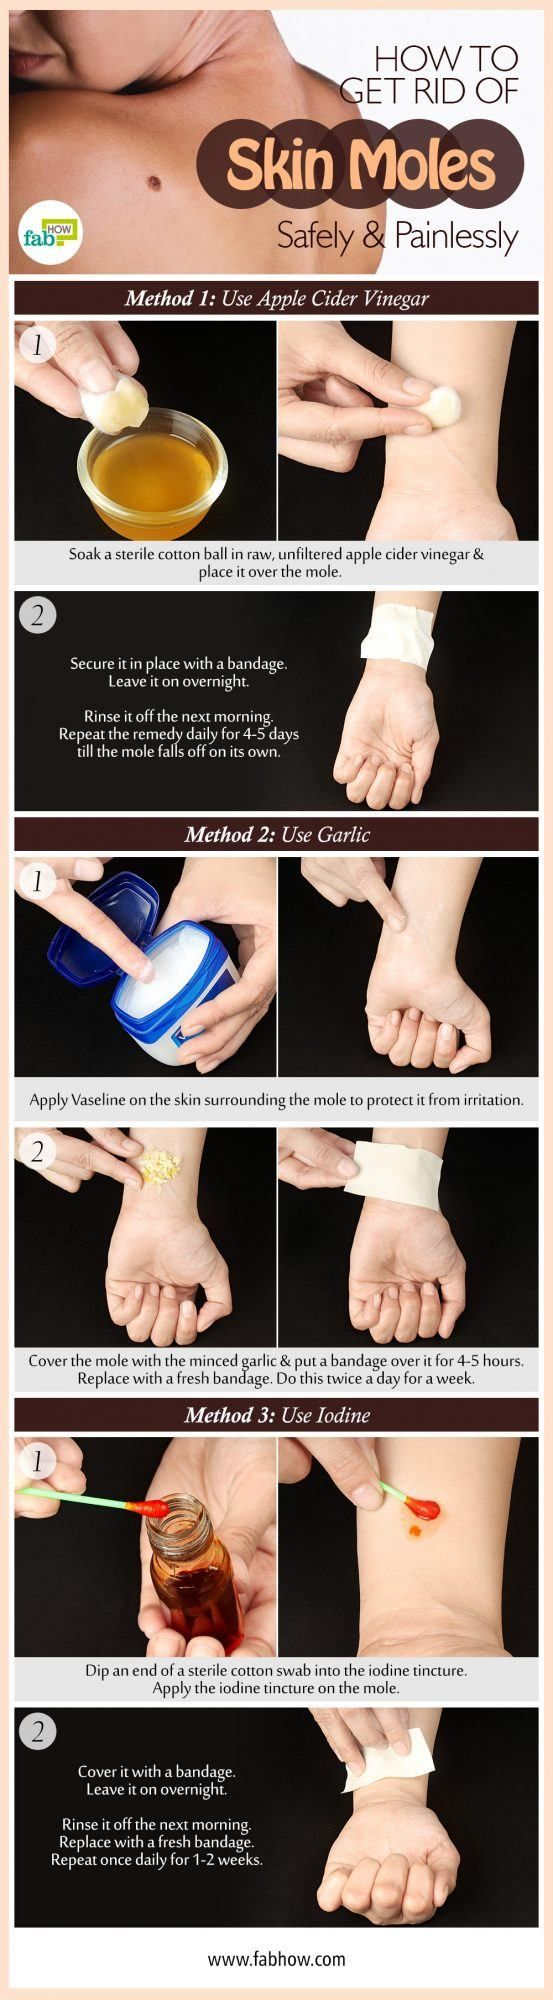 How to Get Rid of Moles Safely and Painlessly with Garlic, ACV Remedy